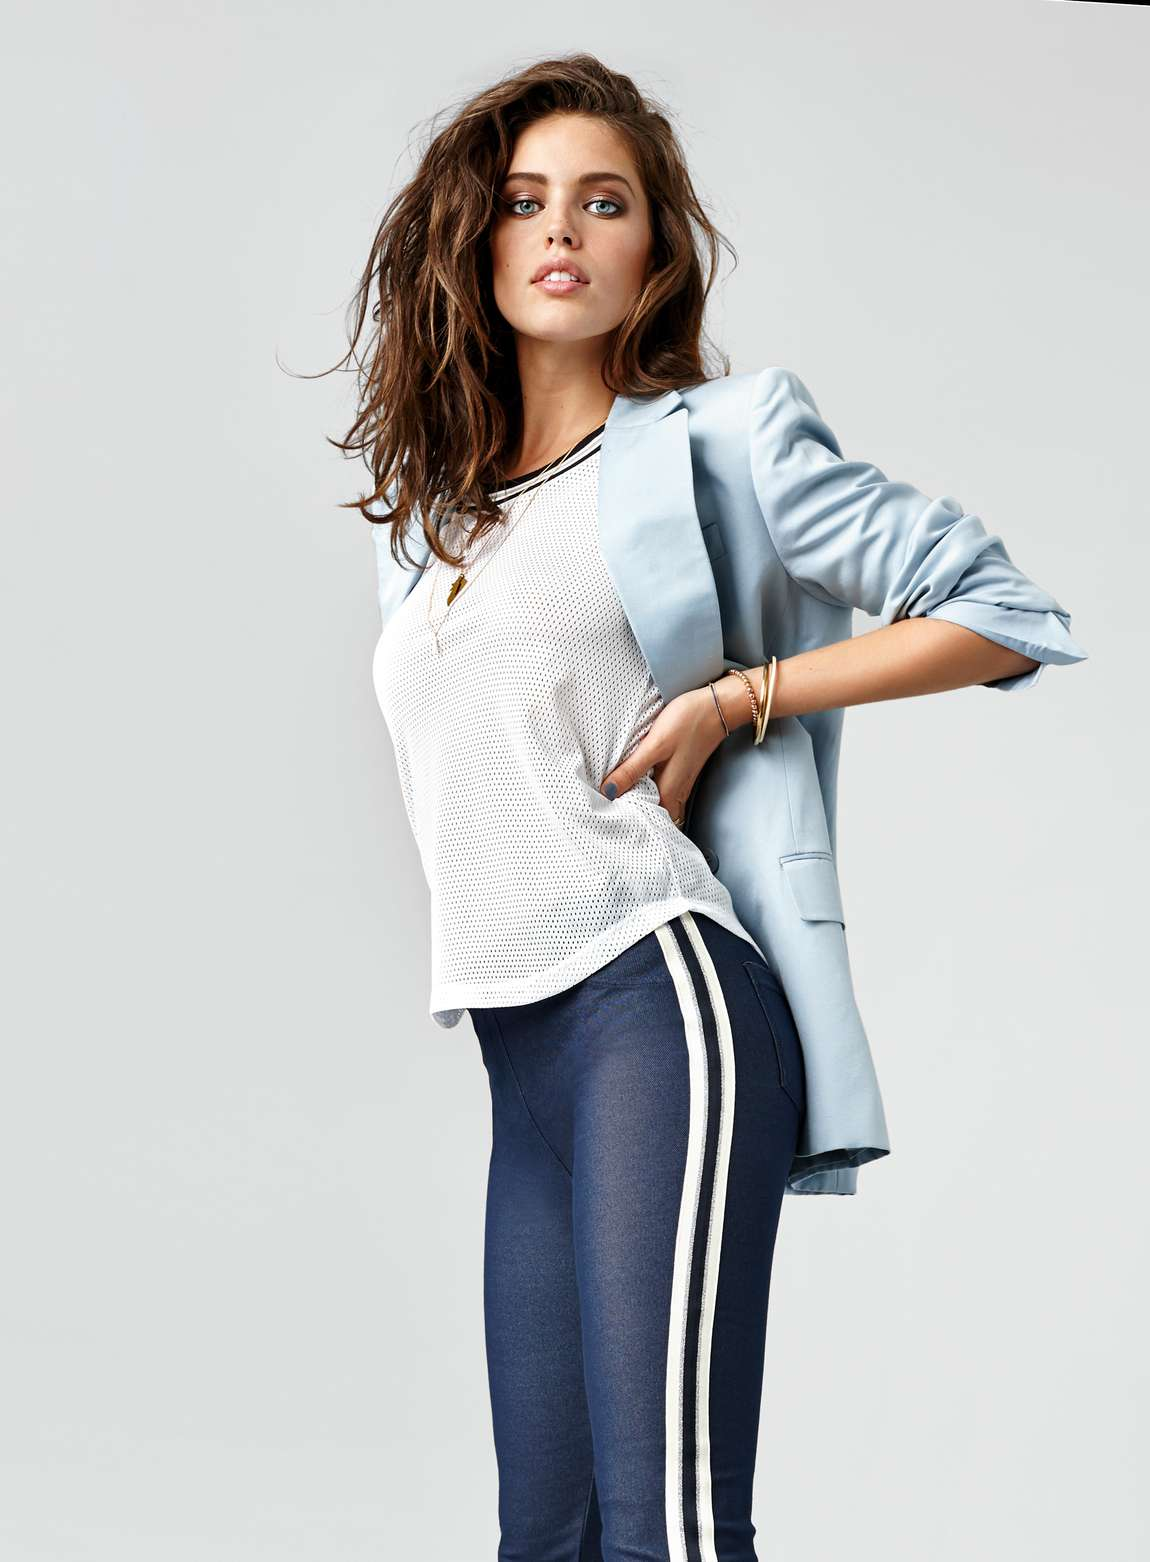 Emily DiDonato Calzedonia Collection